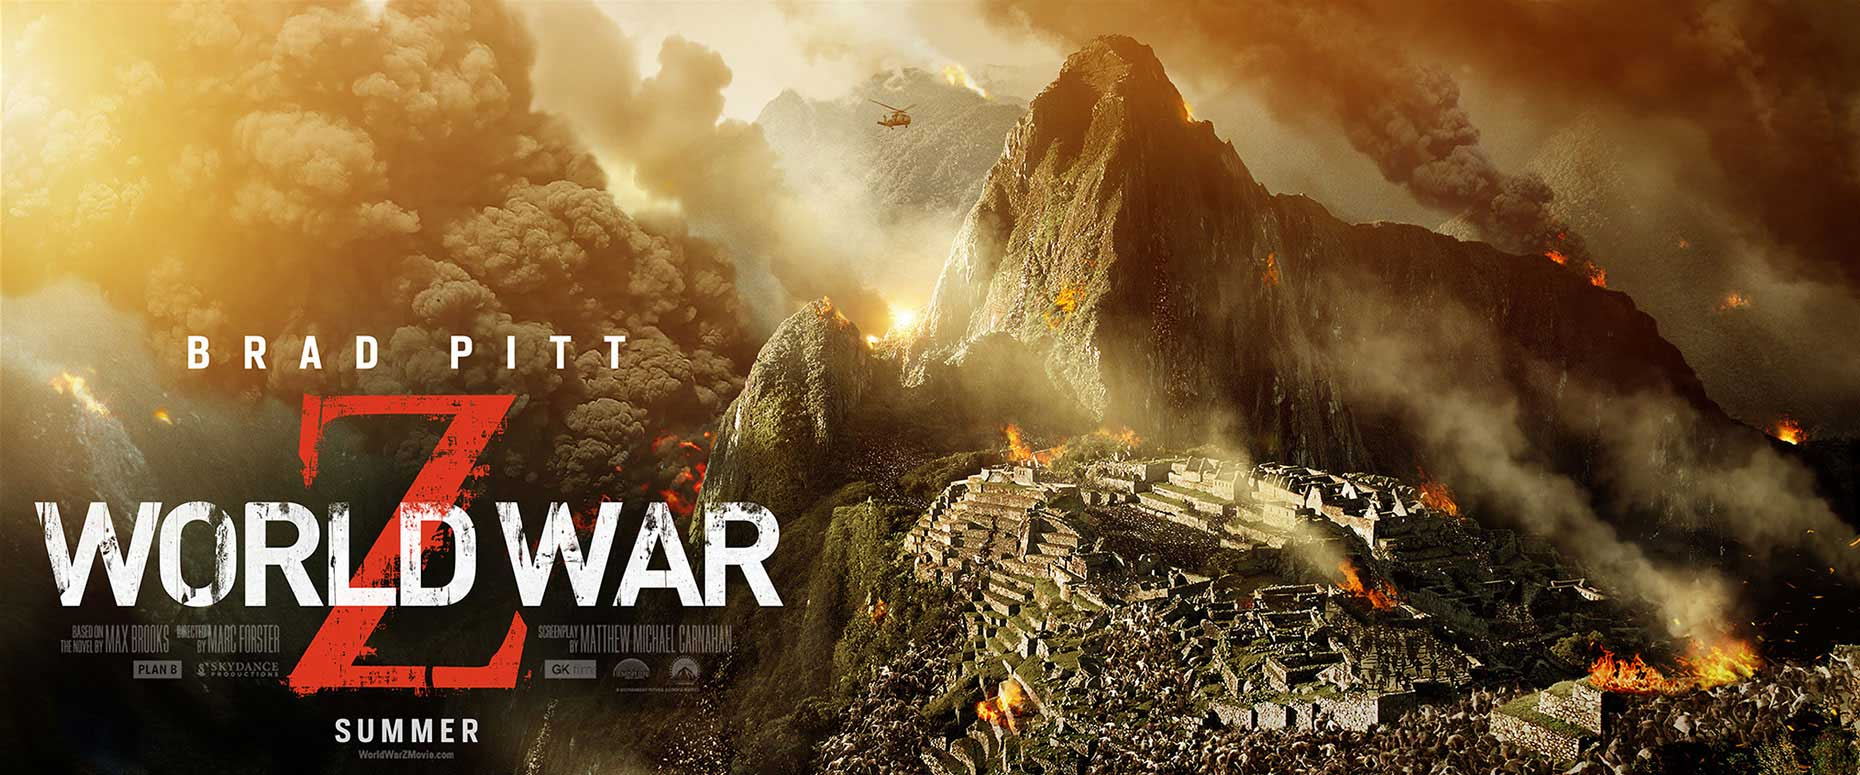 Photo-Imaging_Entertainment_Macchu Picchu world war z-Mike Bryan